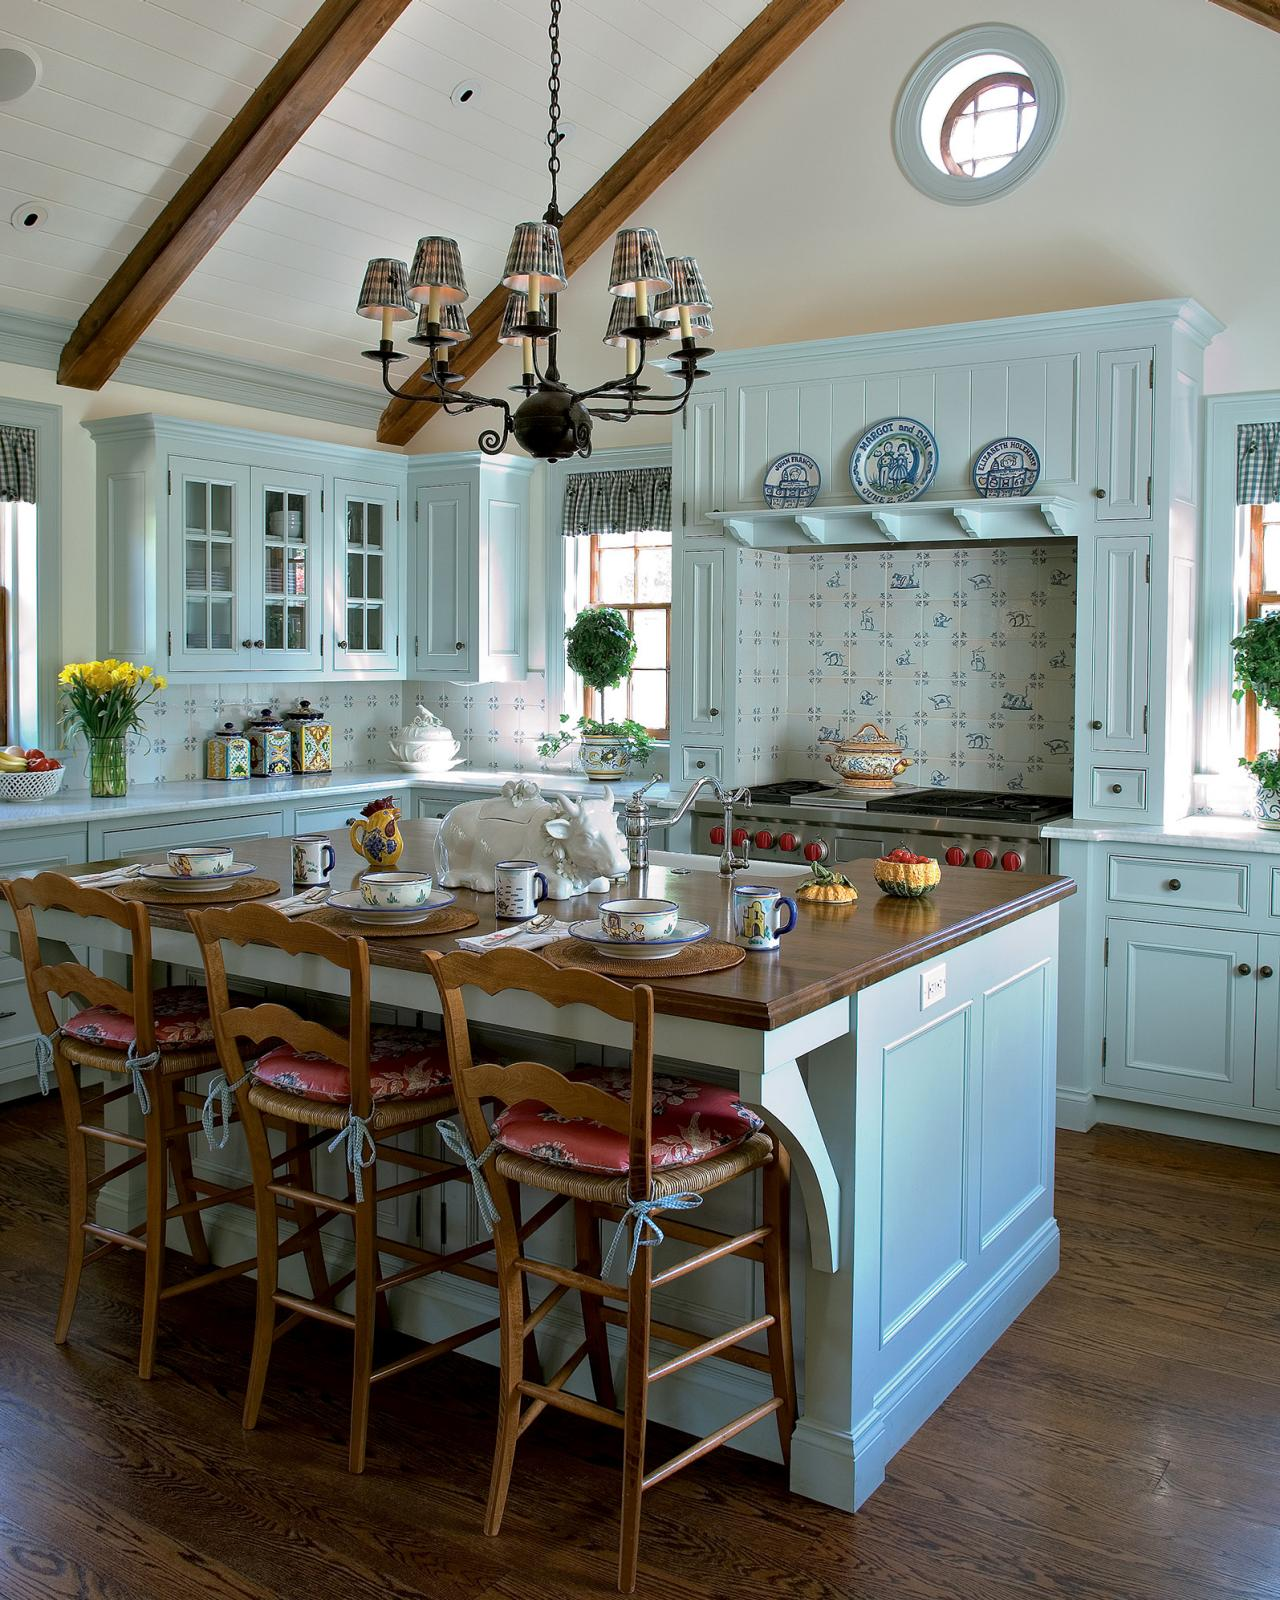 Colonial Kitchen Design: Pictures, Ideas & Tips From HGTV | HGTV